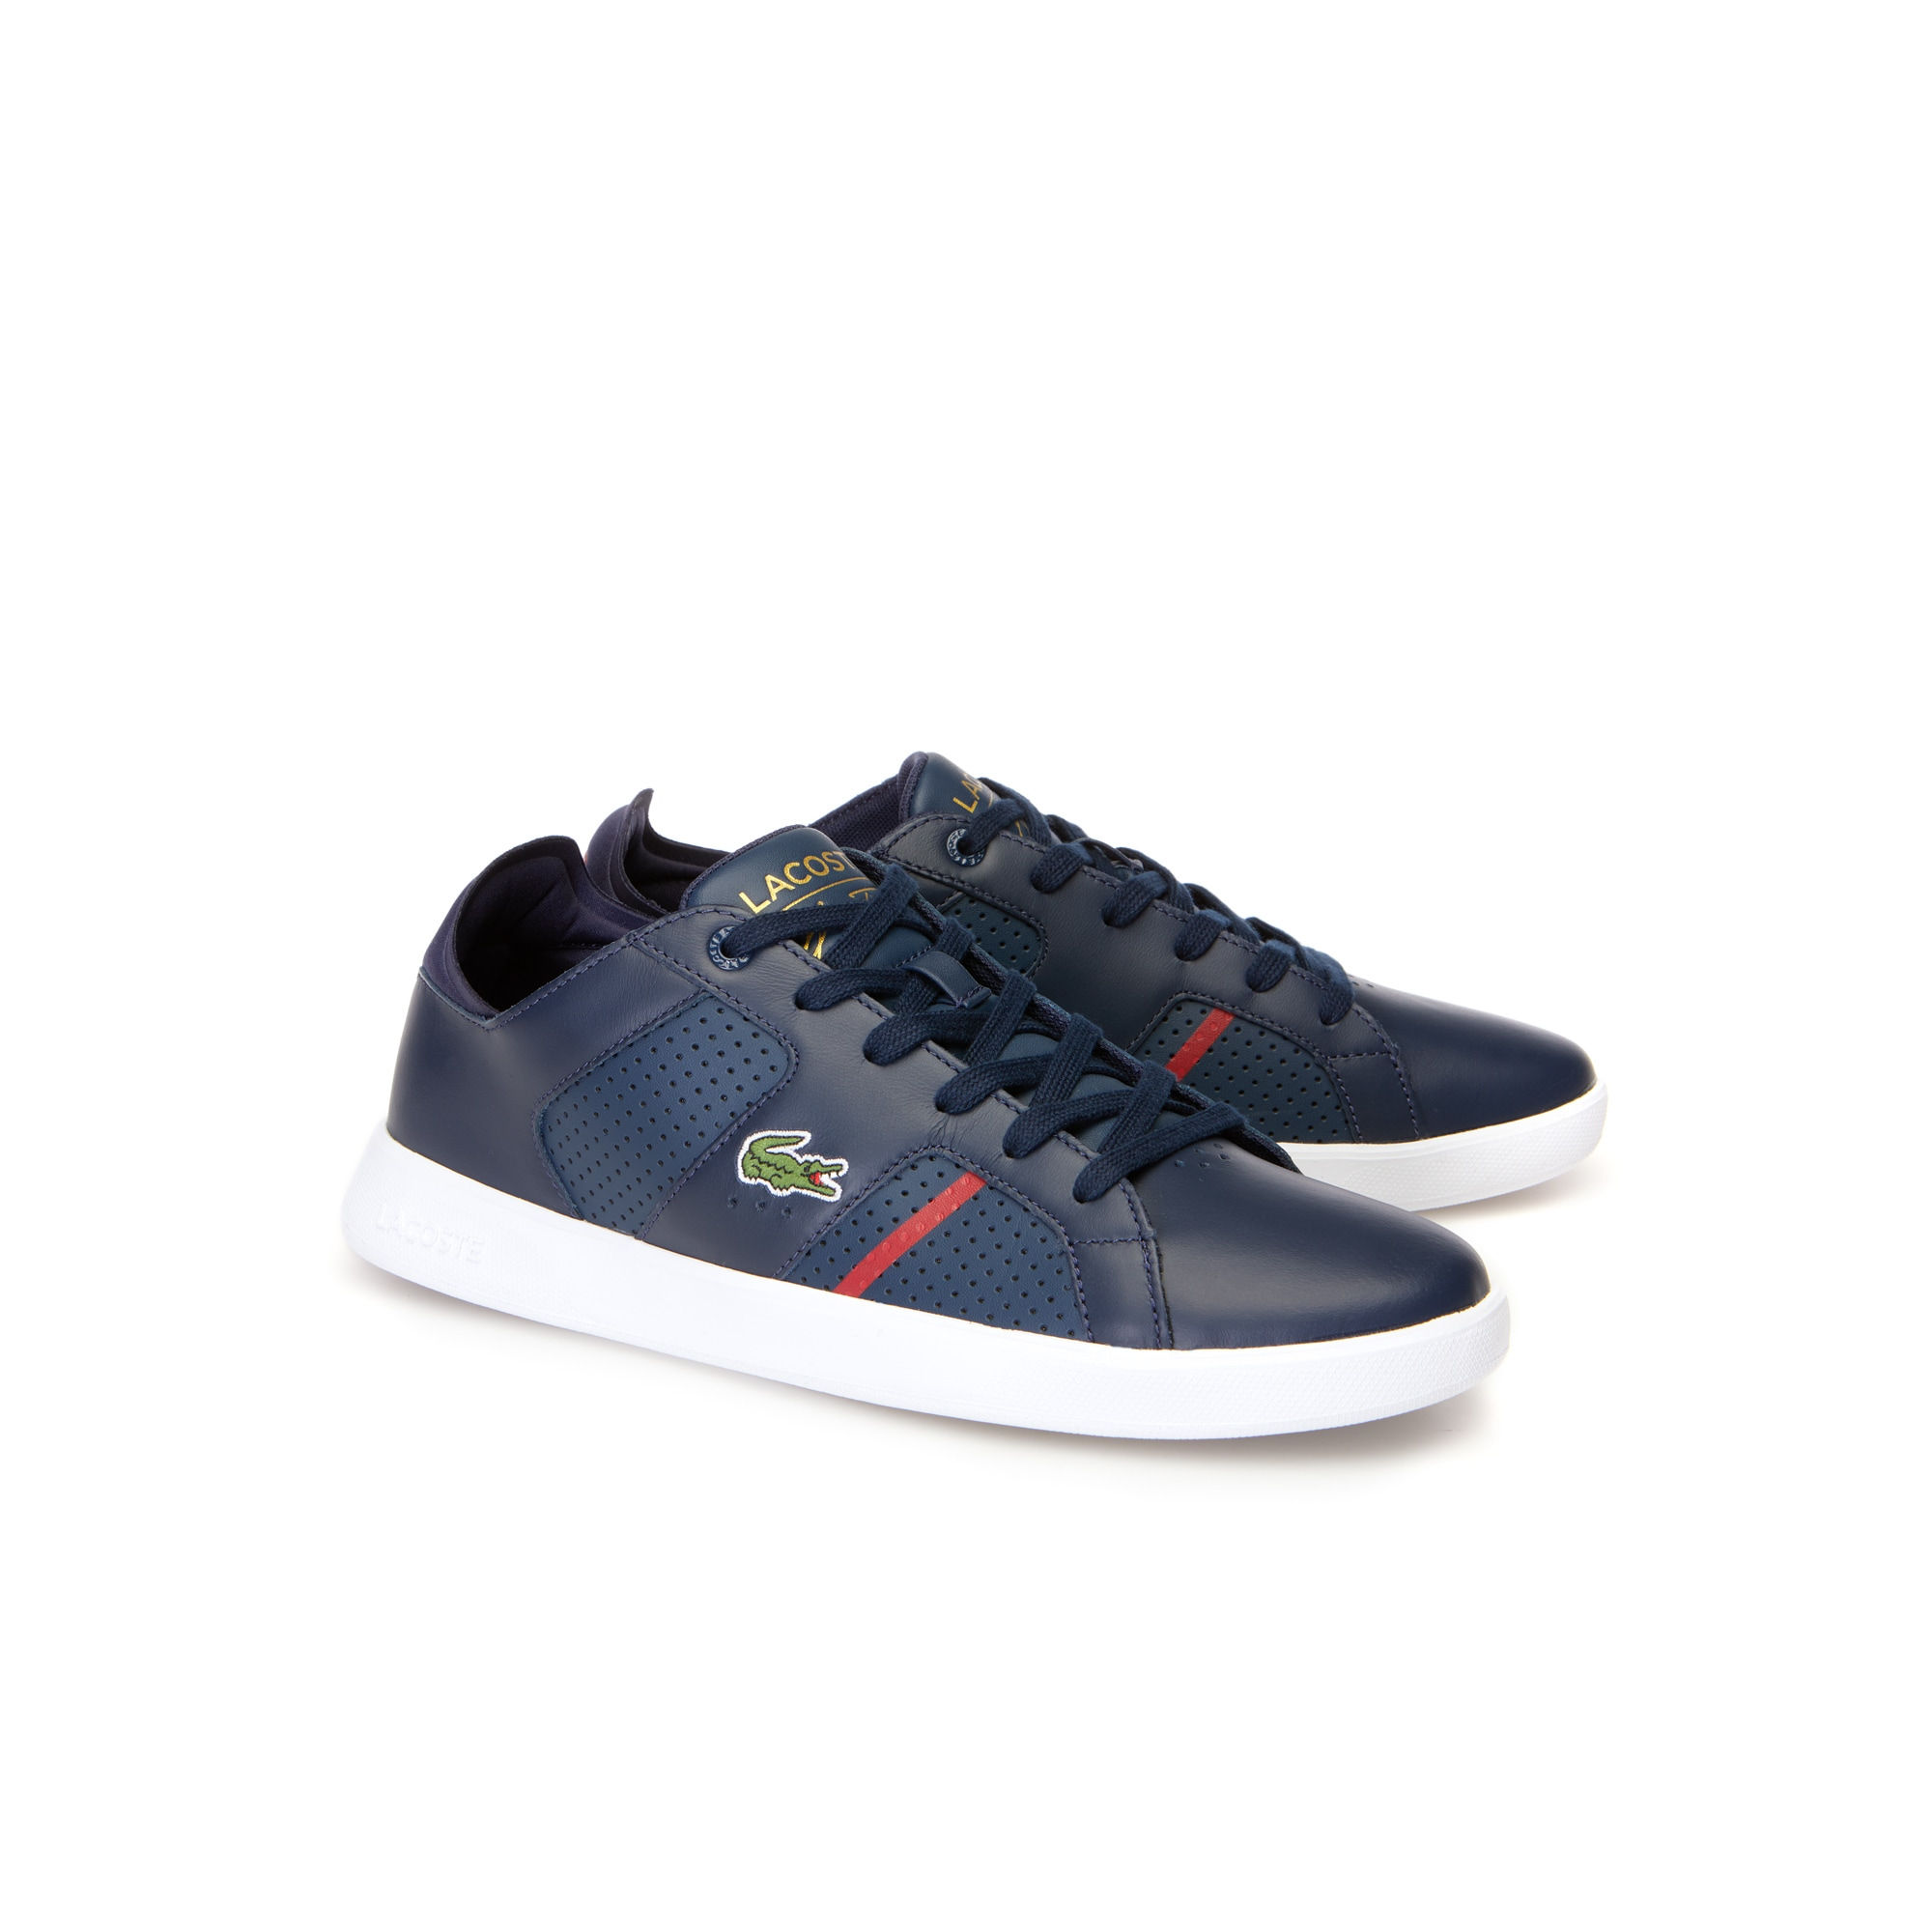 Novas CT herensneakers van leer